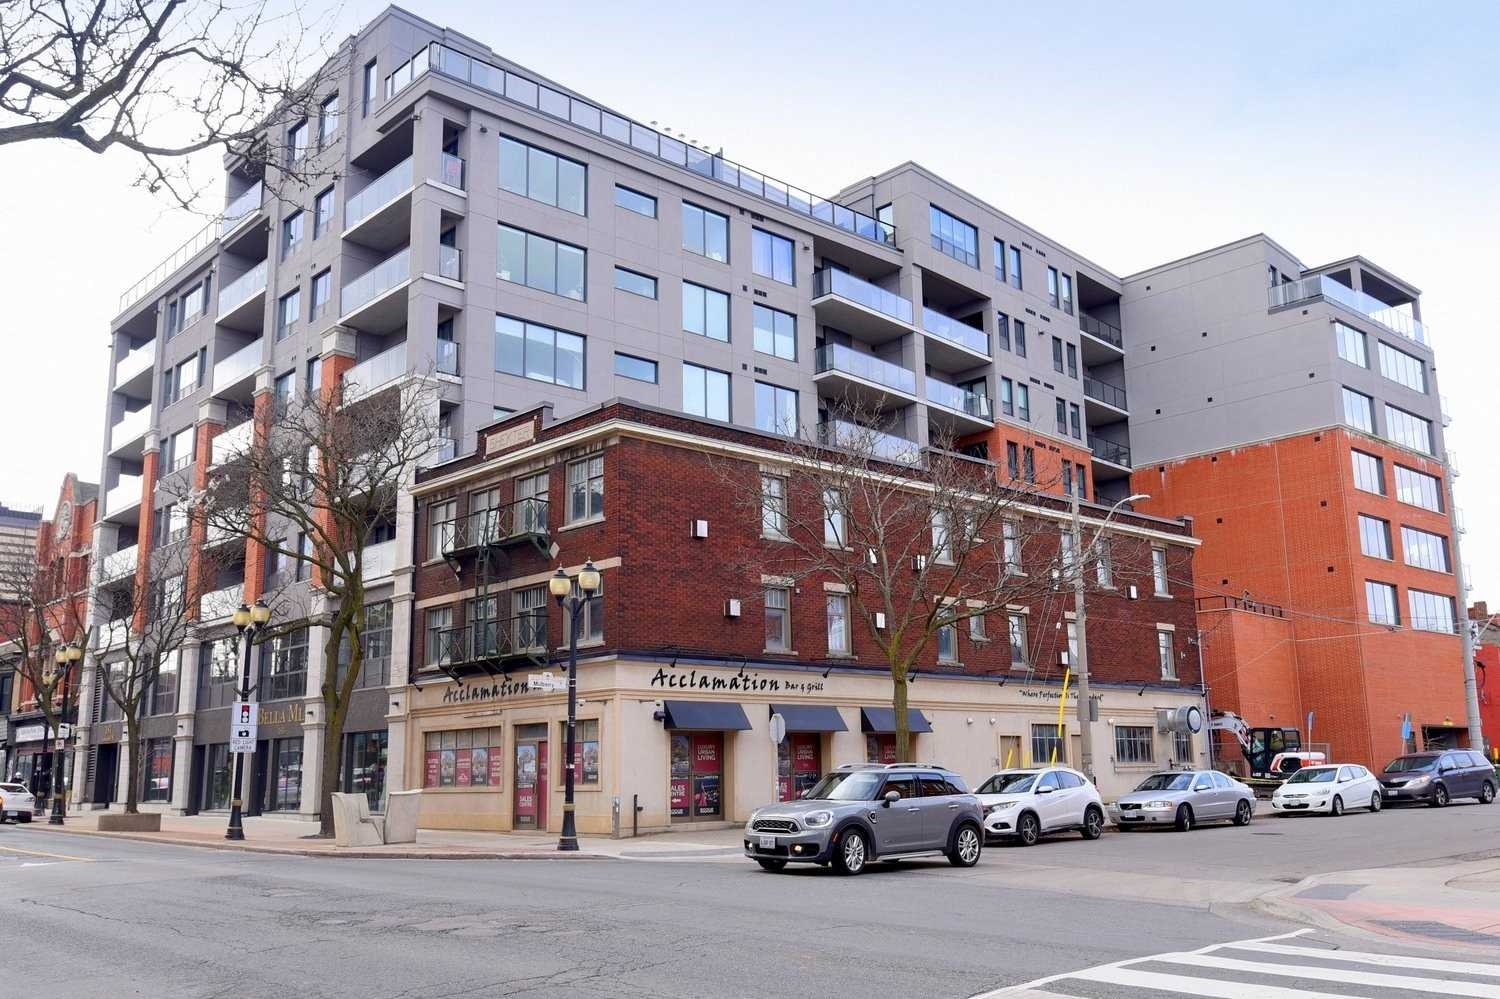 Amazing Southern Views Looking Across The City. This Spacious Unit In The Acclamation Residences Features Granite Counters, Gas Stove, 2 Way Gas Fireplace To Enjoy Inside And Out, In-Suite Laundry 1 Bedroom Plus Den With Closet And Gas Bbq Hook Up On The Balcony. Located In The Trending James St. N. Area With Plenty Of Restaurants And Shops Just Outside Your Door. Enjoy The Roof Top Patio With Panoramic Views Of The City. Walk To Liuna Go Station & Market.